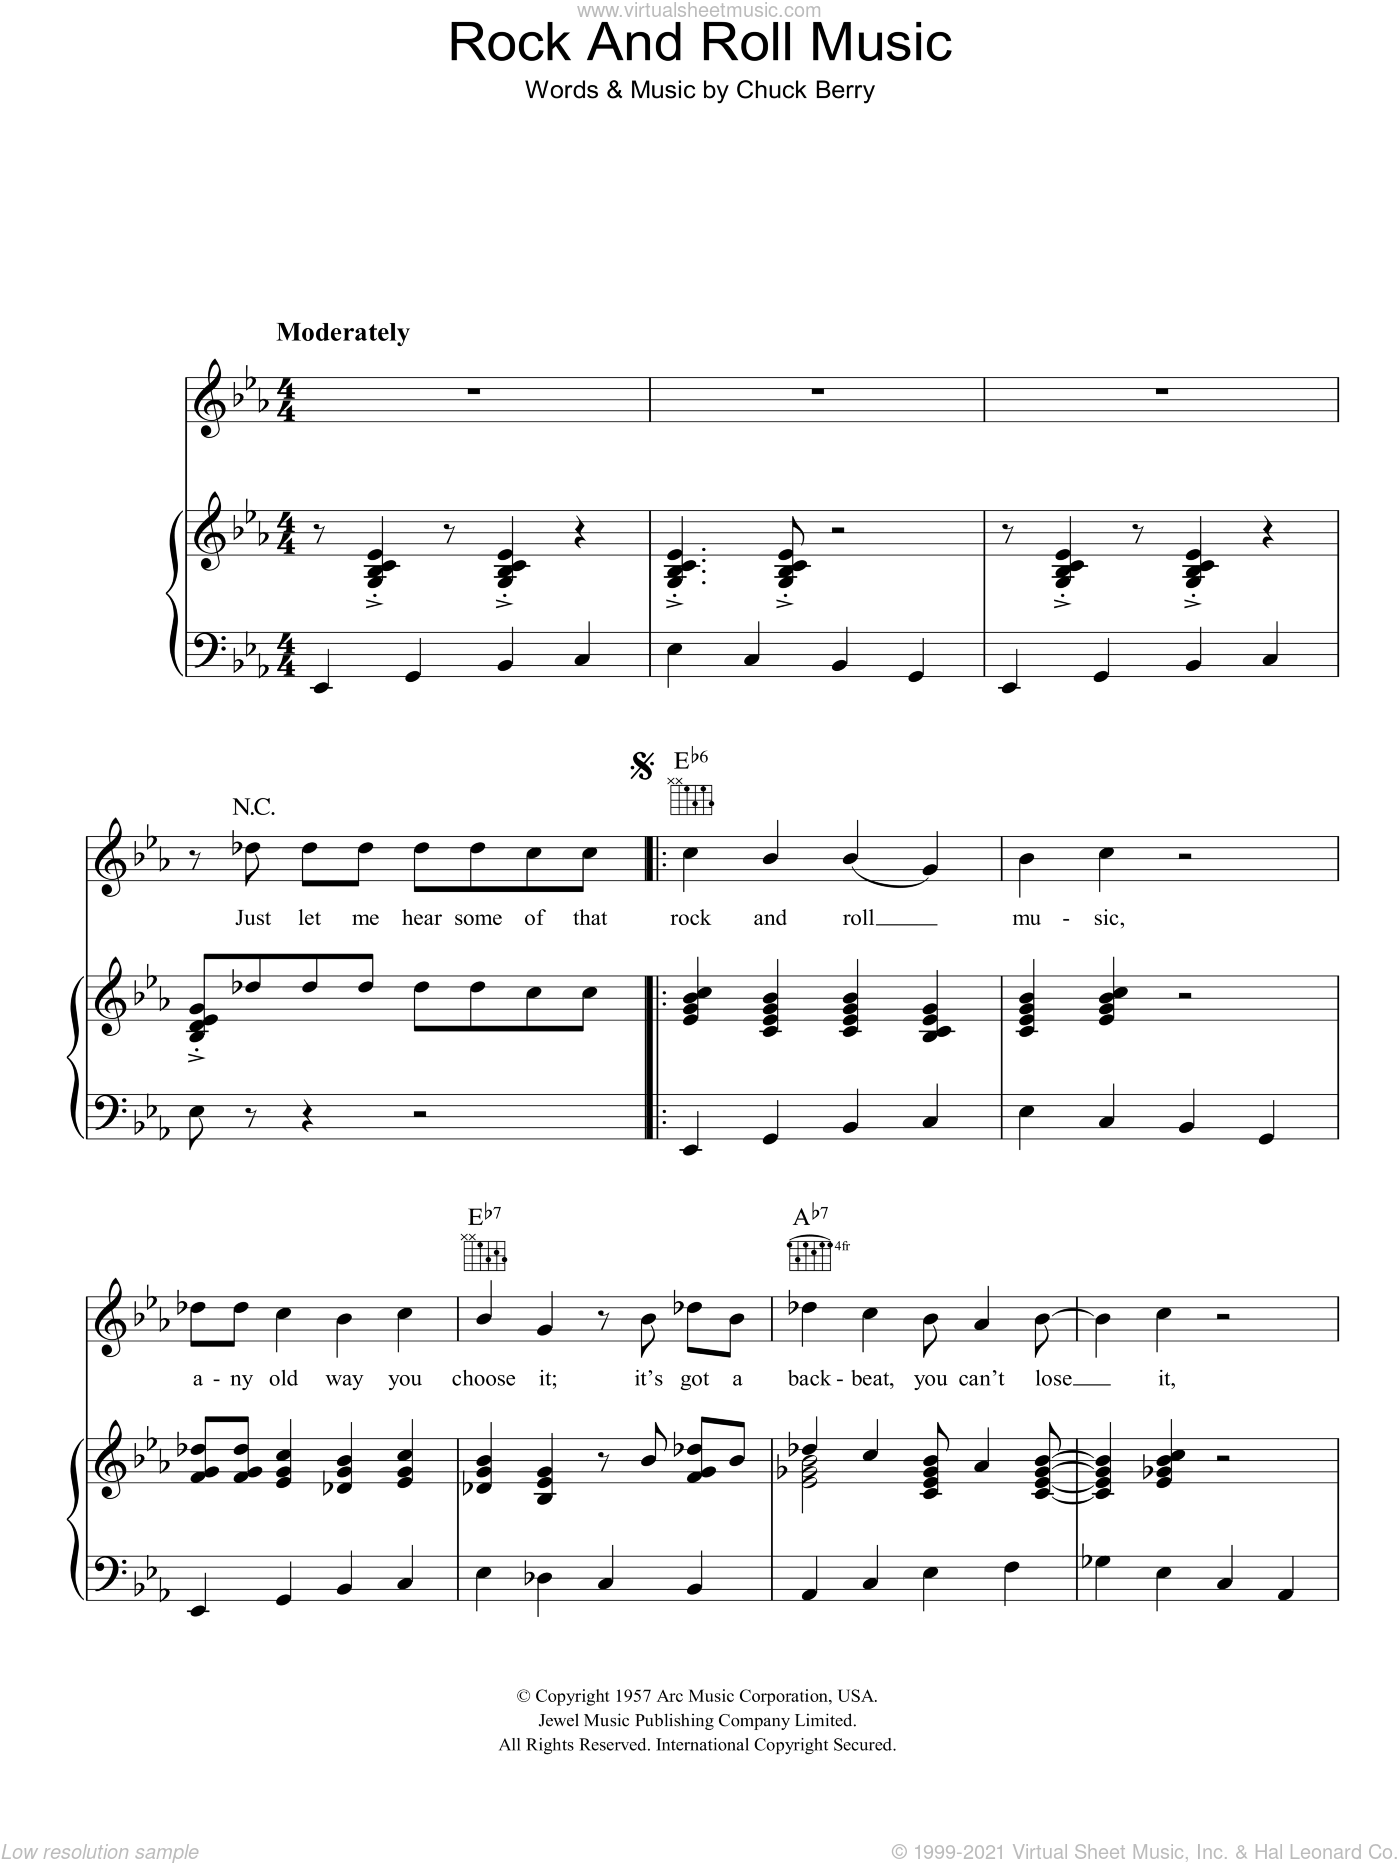 Rock And Roll Music sheet music for voice, piano or guitar by Chuck Berry